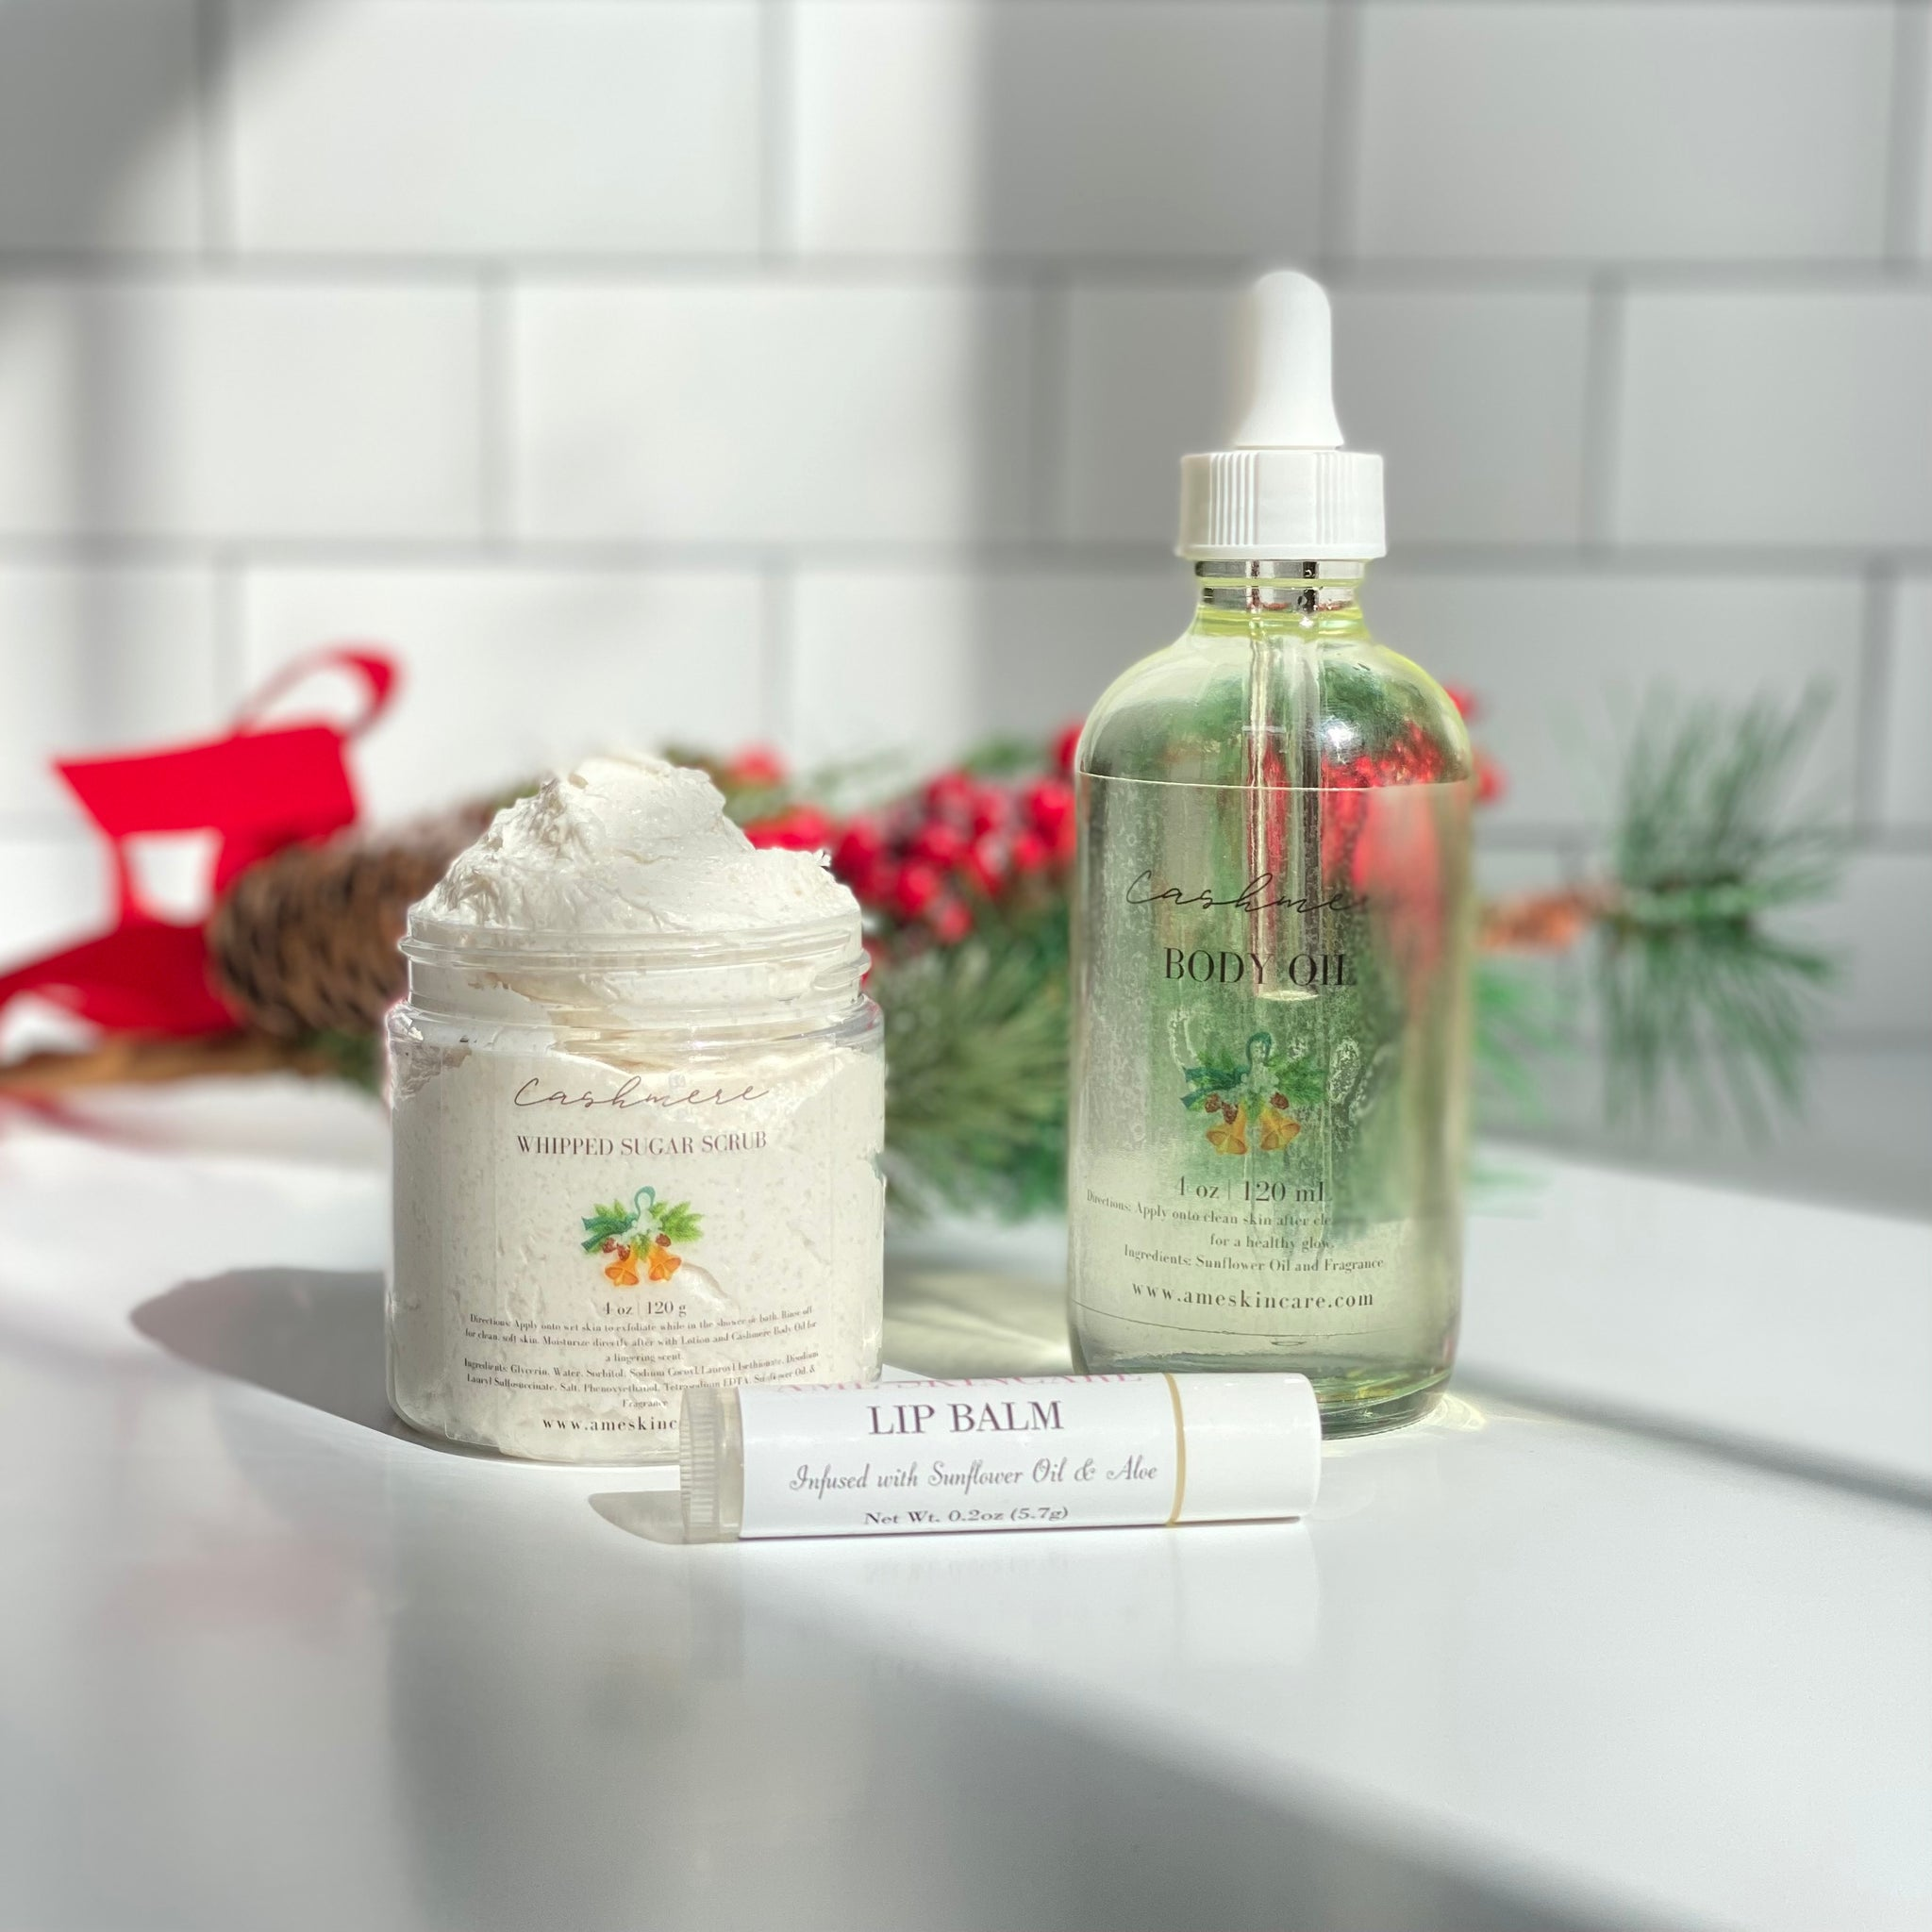 The Cashmere Holiday Bundle Body Care Set - Limited Edition